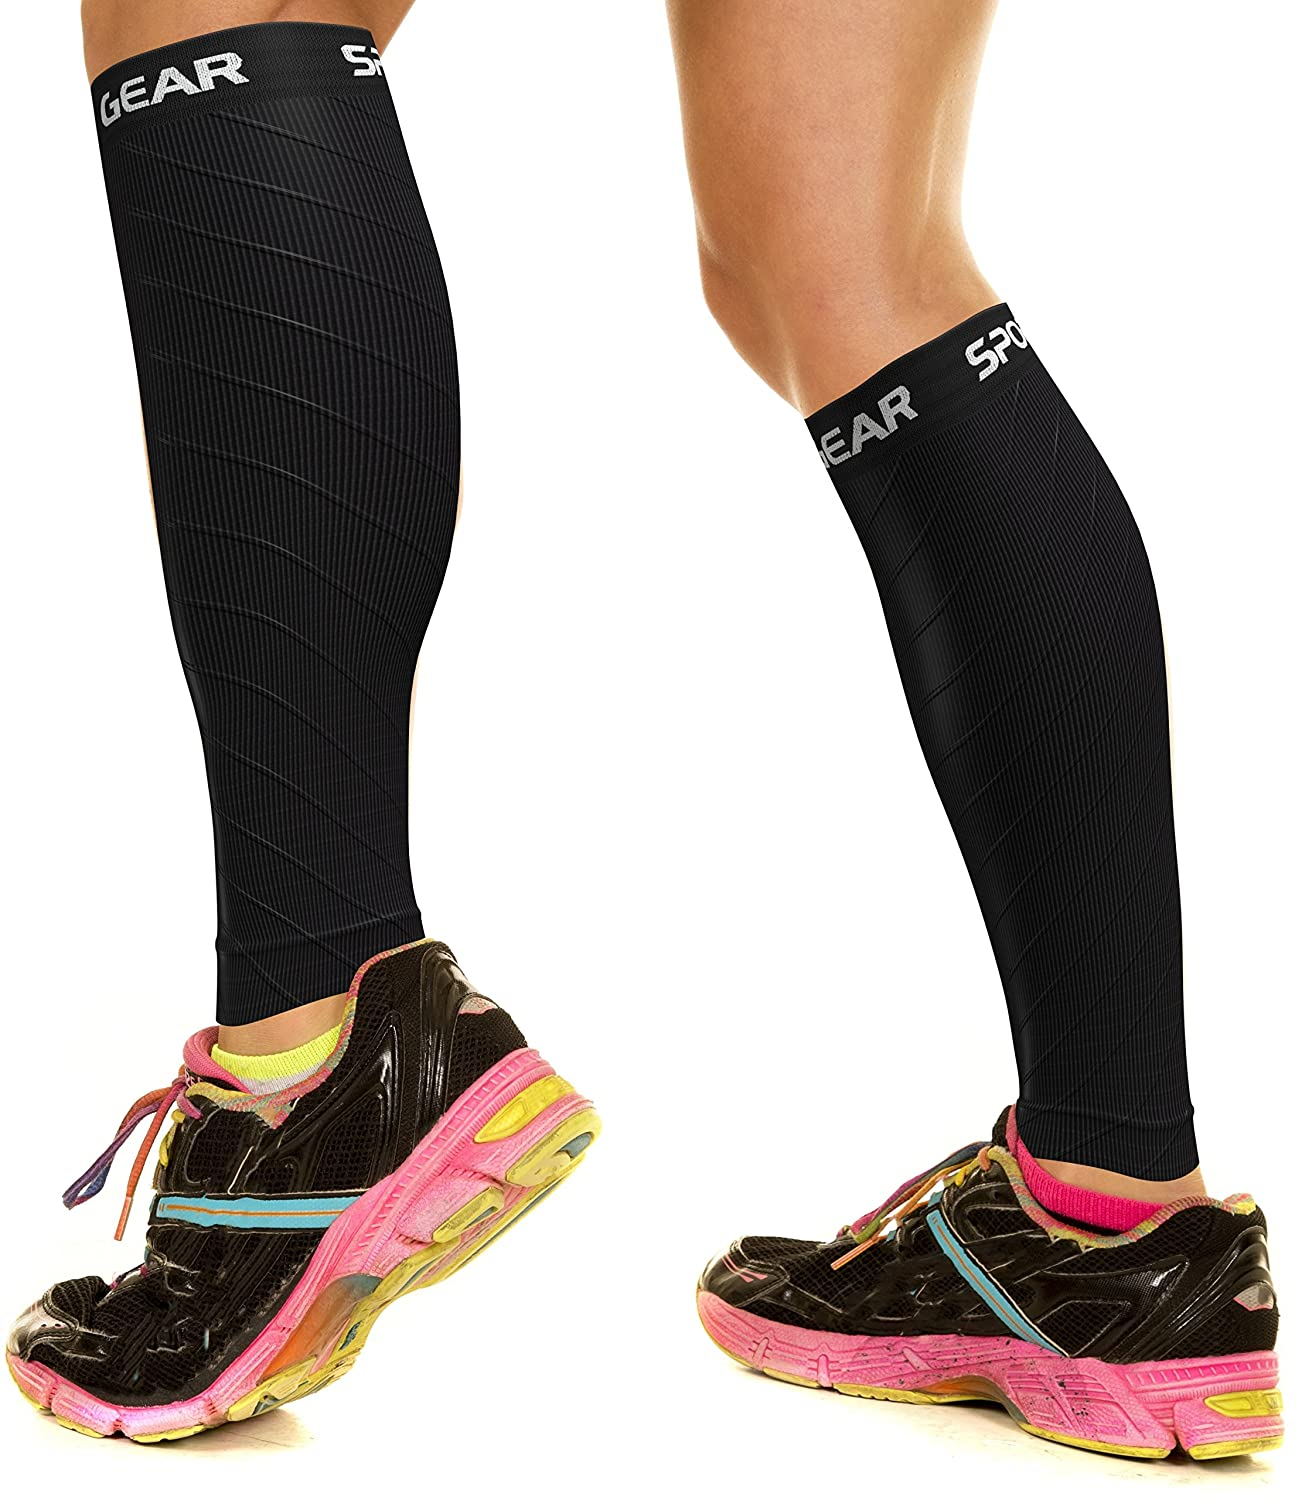 420d5603589c5 Amazon.com: Physix Gear Sport Compression Calf Sleeves for Men ...